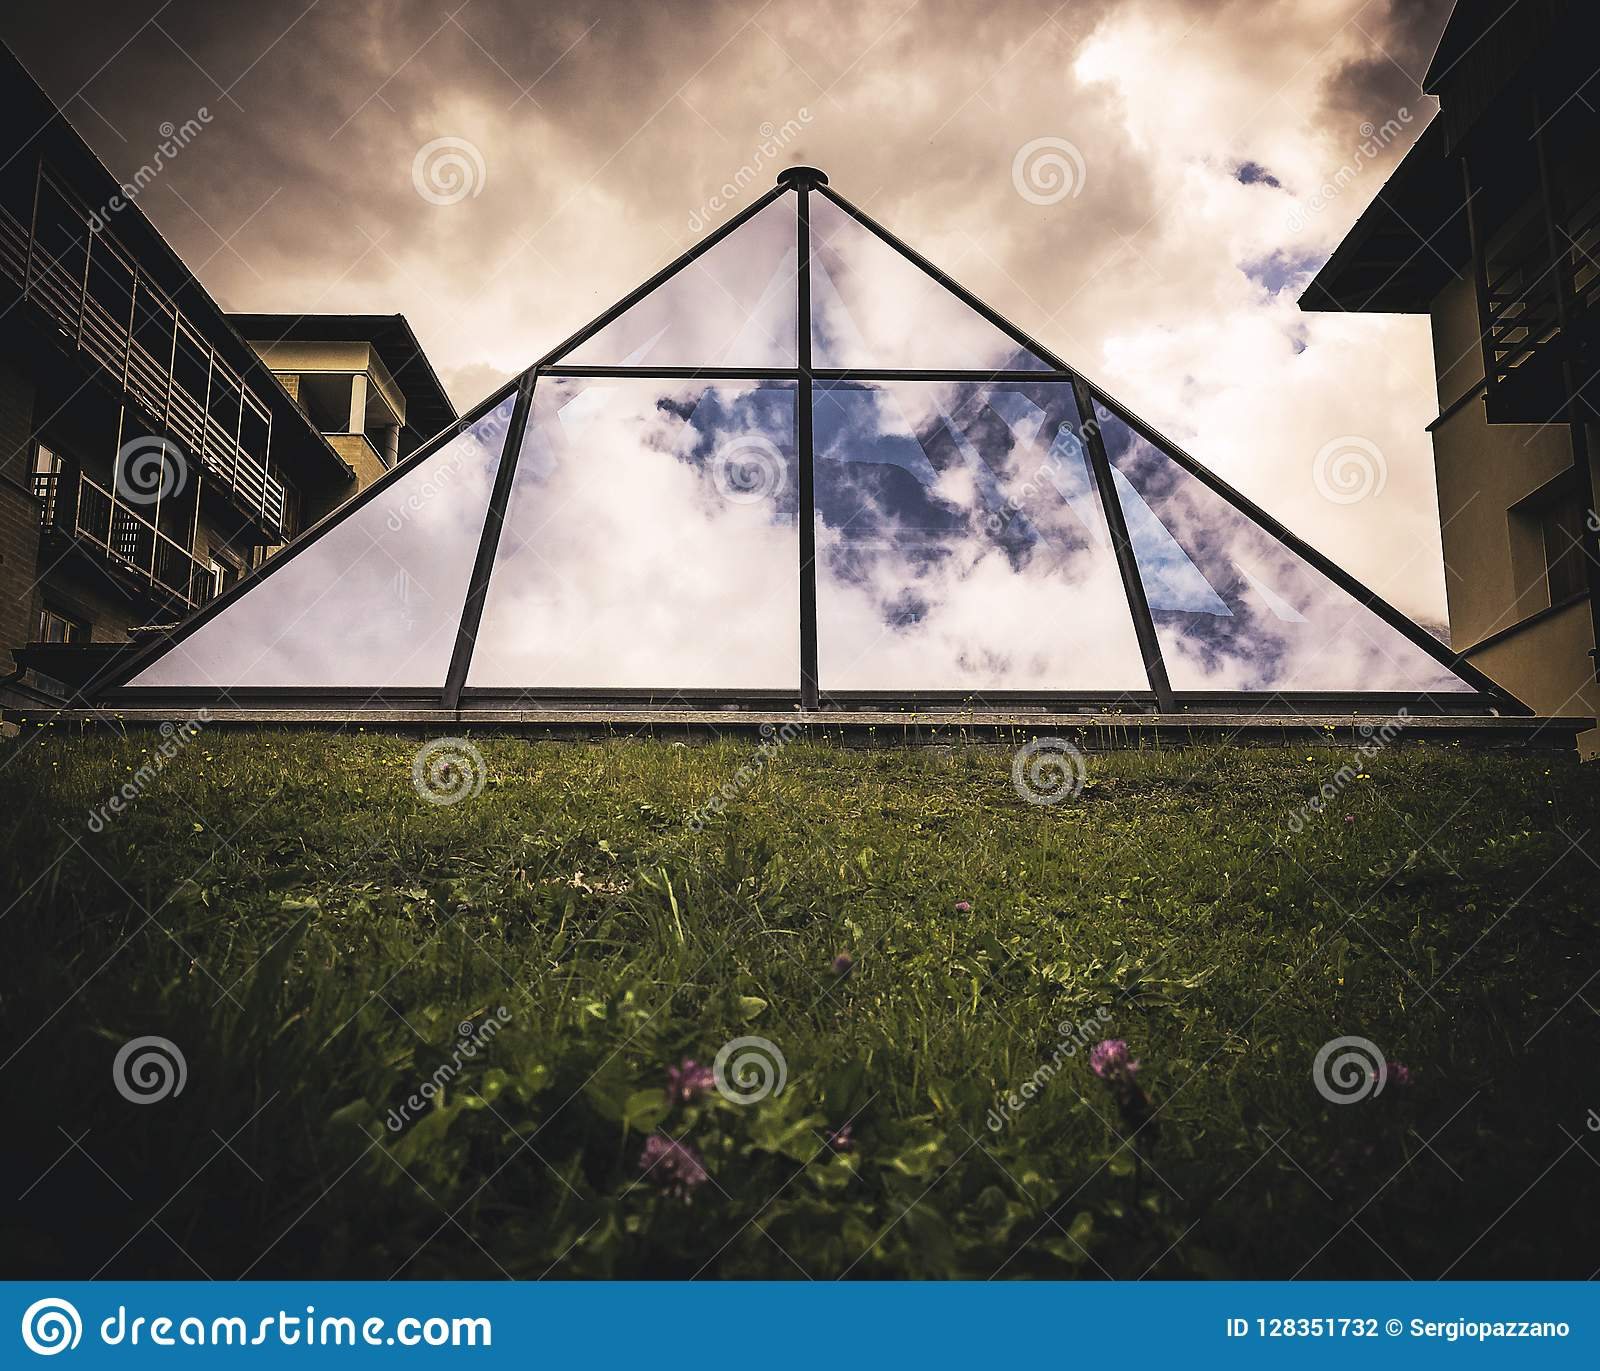 Architectural structure in the shape of a pyramid and built with transparent glass